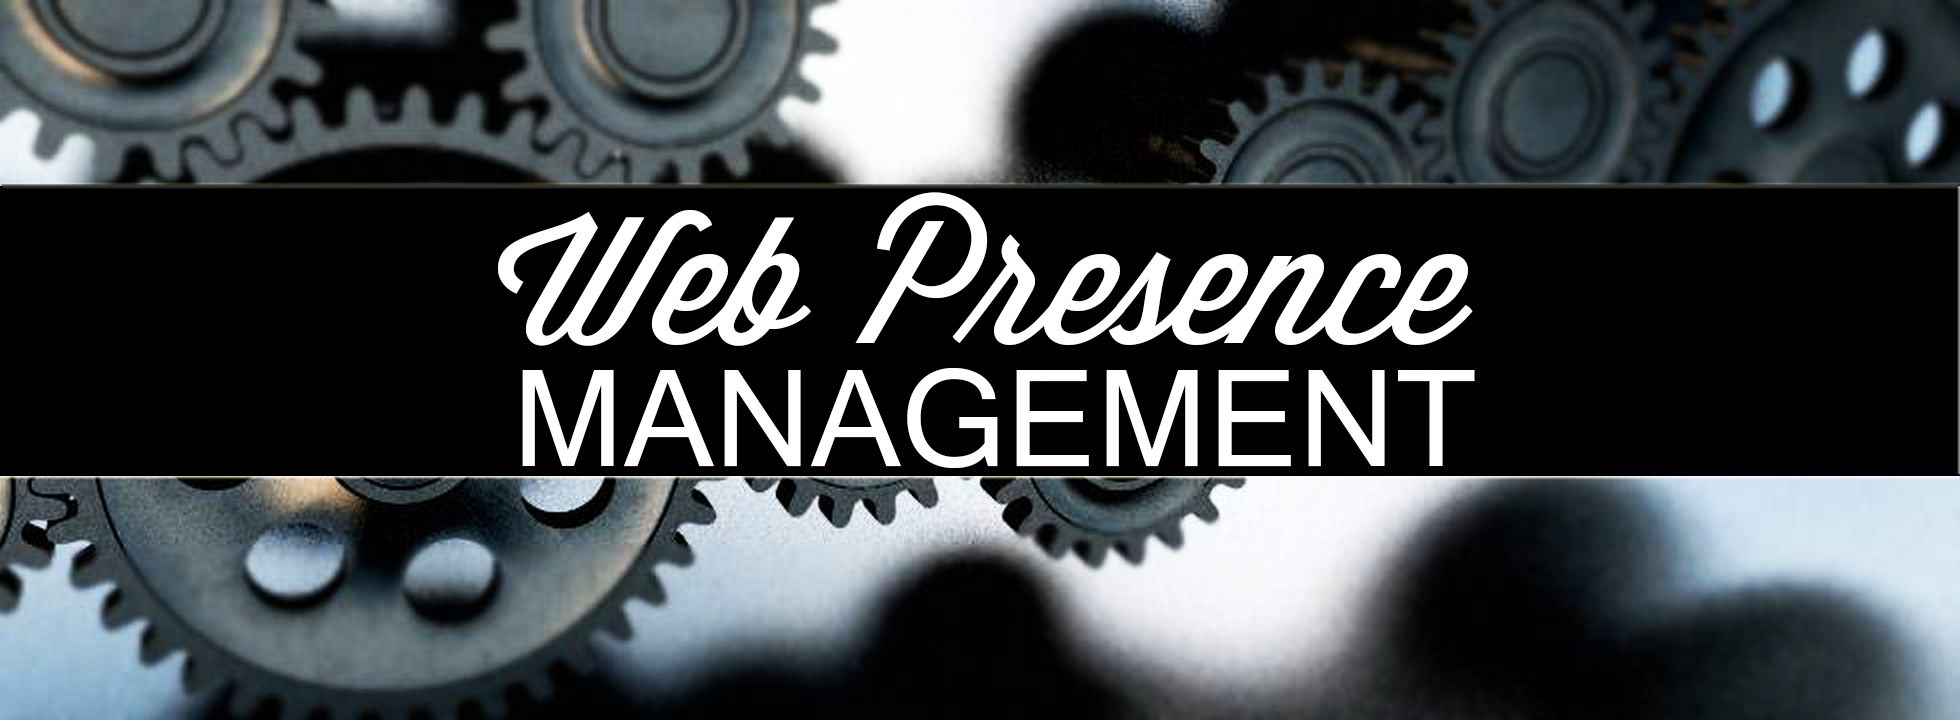 Web Presence Management. It's a Necessity!